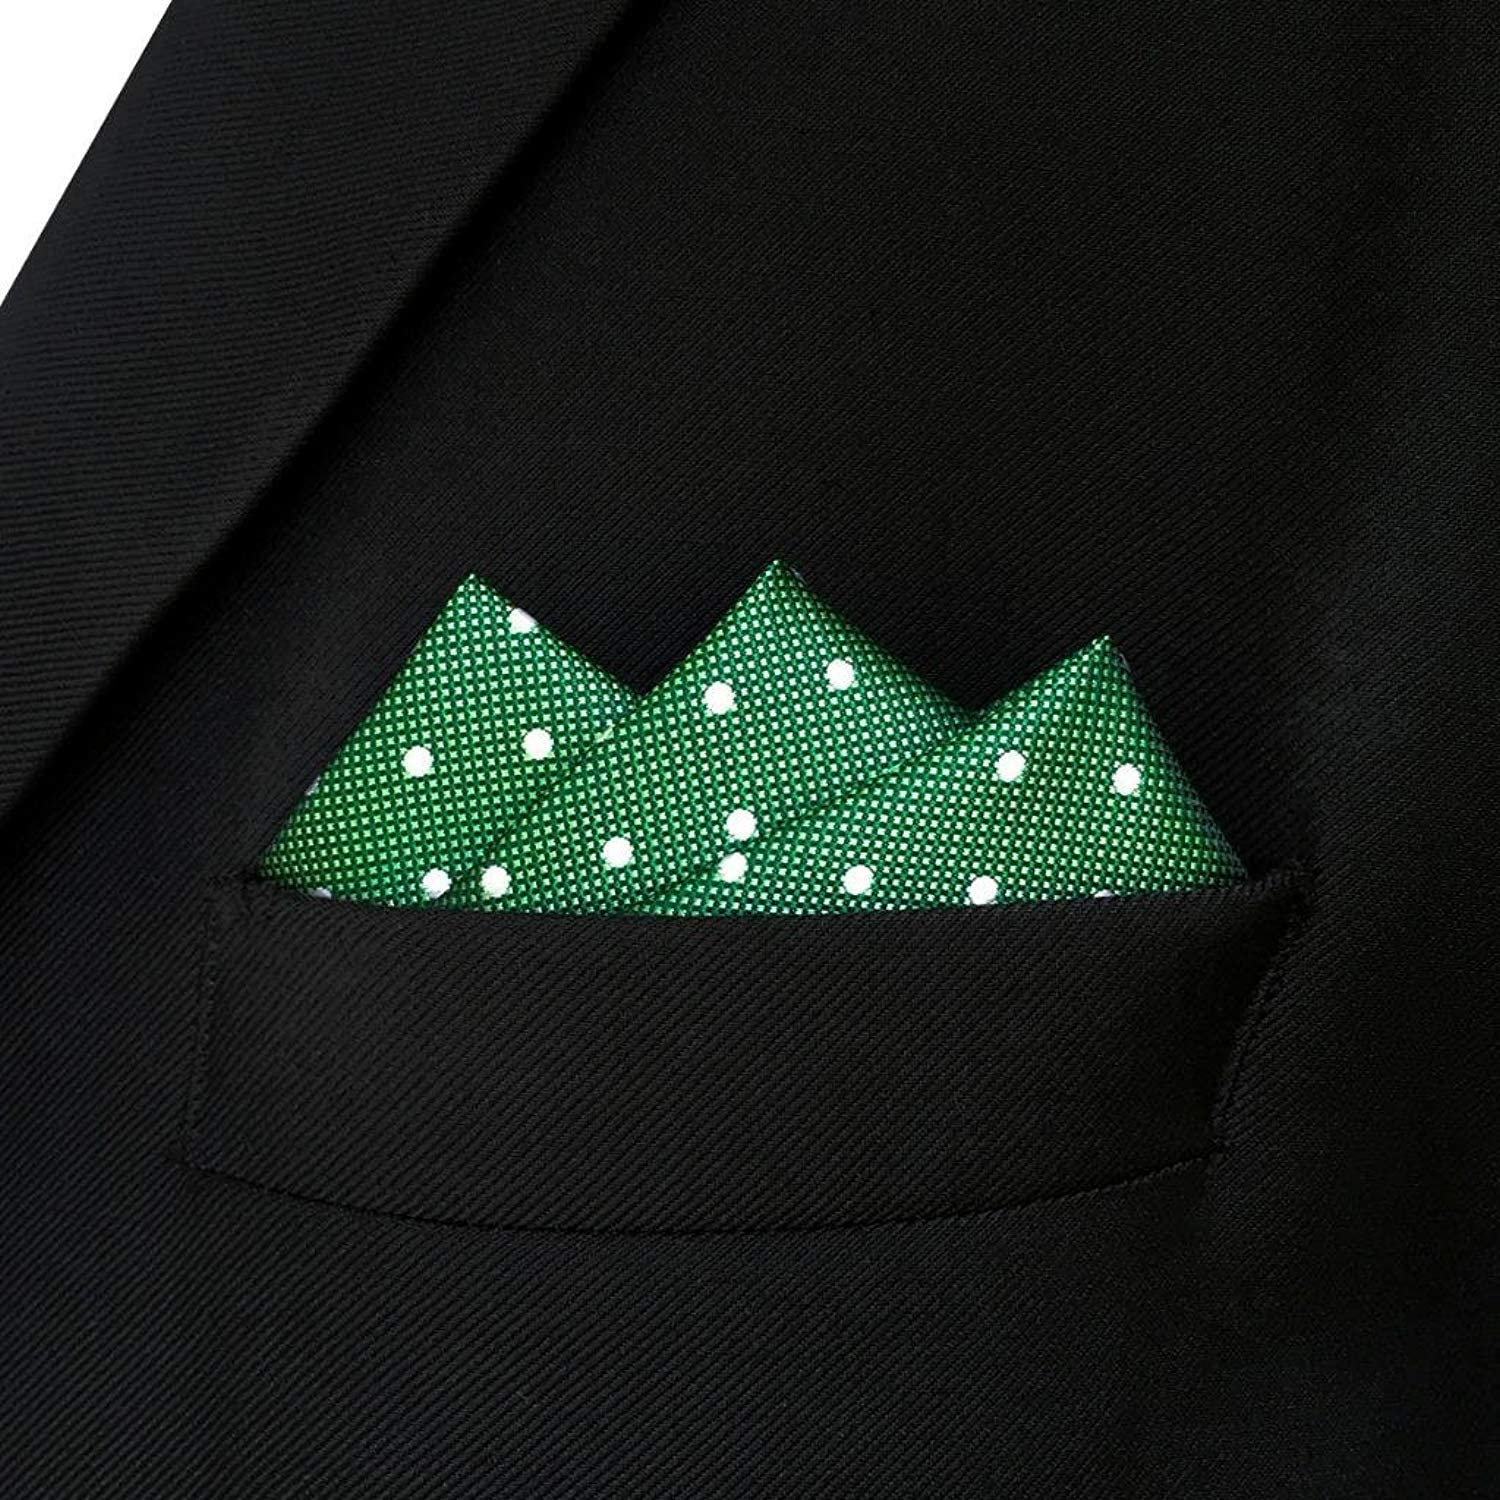 SHLAX/&WING Dots Green Pocket Square for Mens Suit 12.6 inches Large Handkerchief